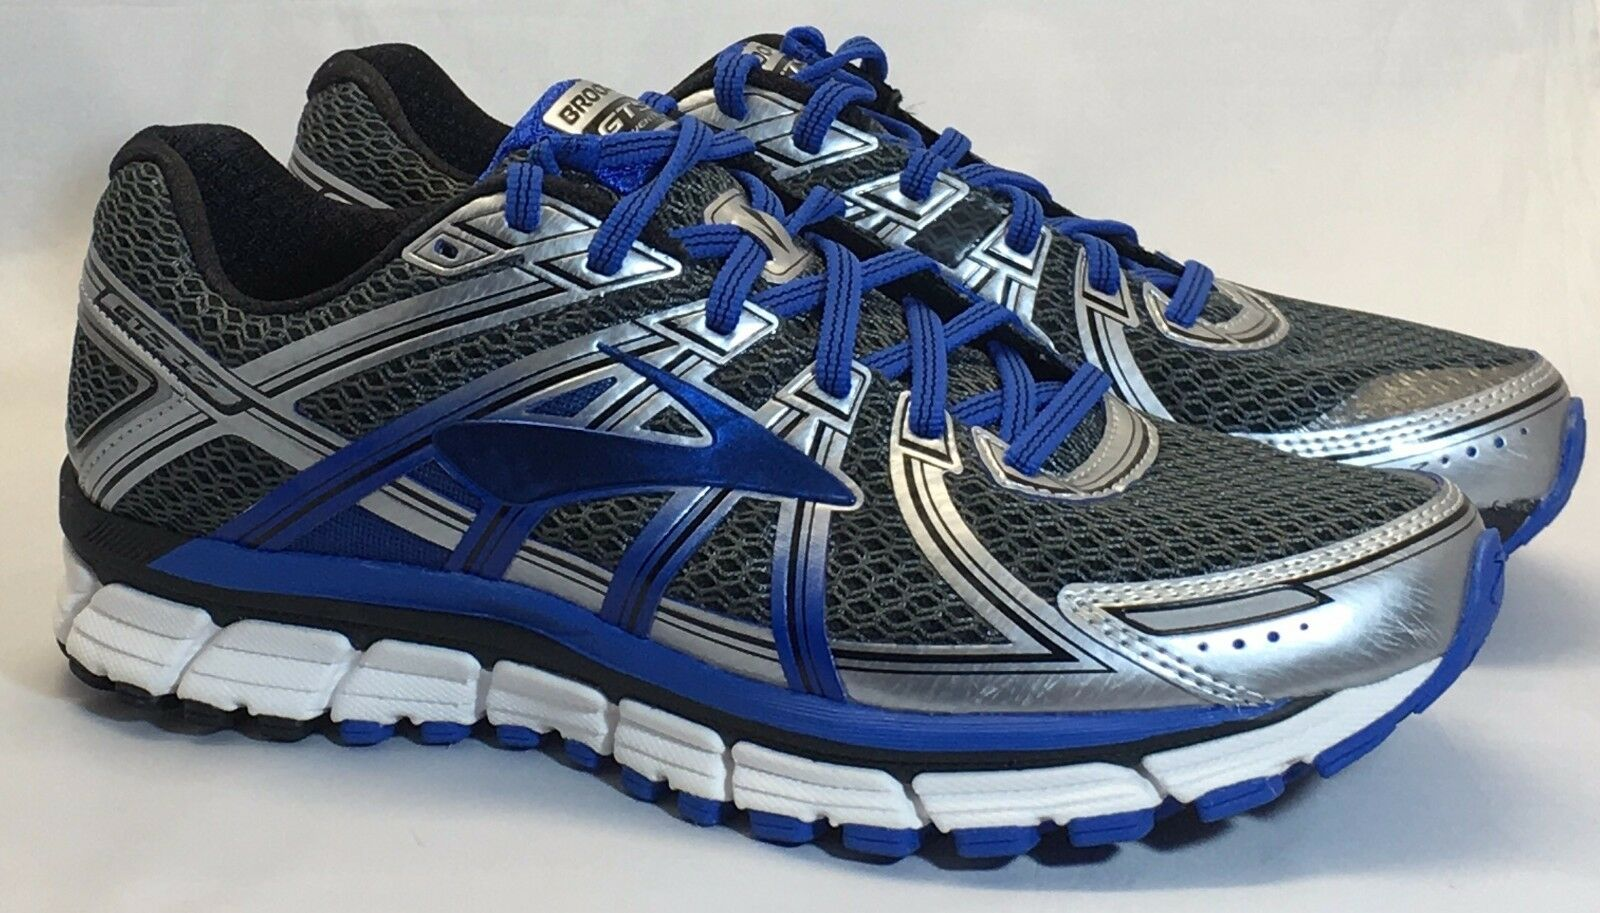 || BARGAIN || Brooks Adrenaline GTS 17 Mens Running Shoes (4E) (017)